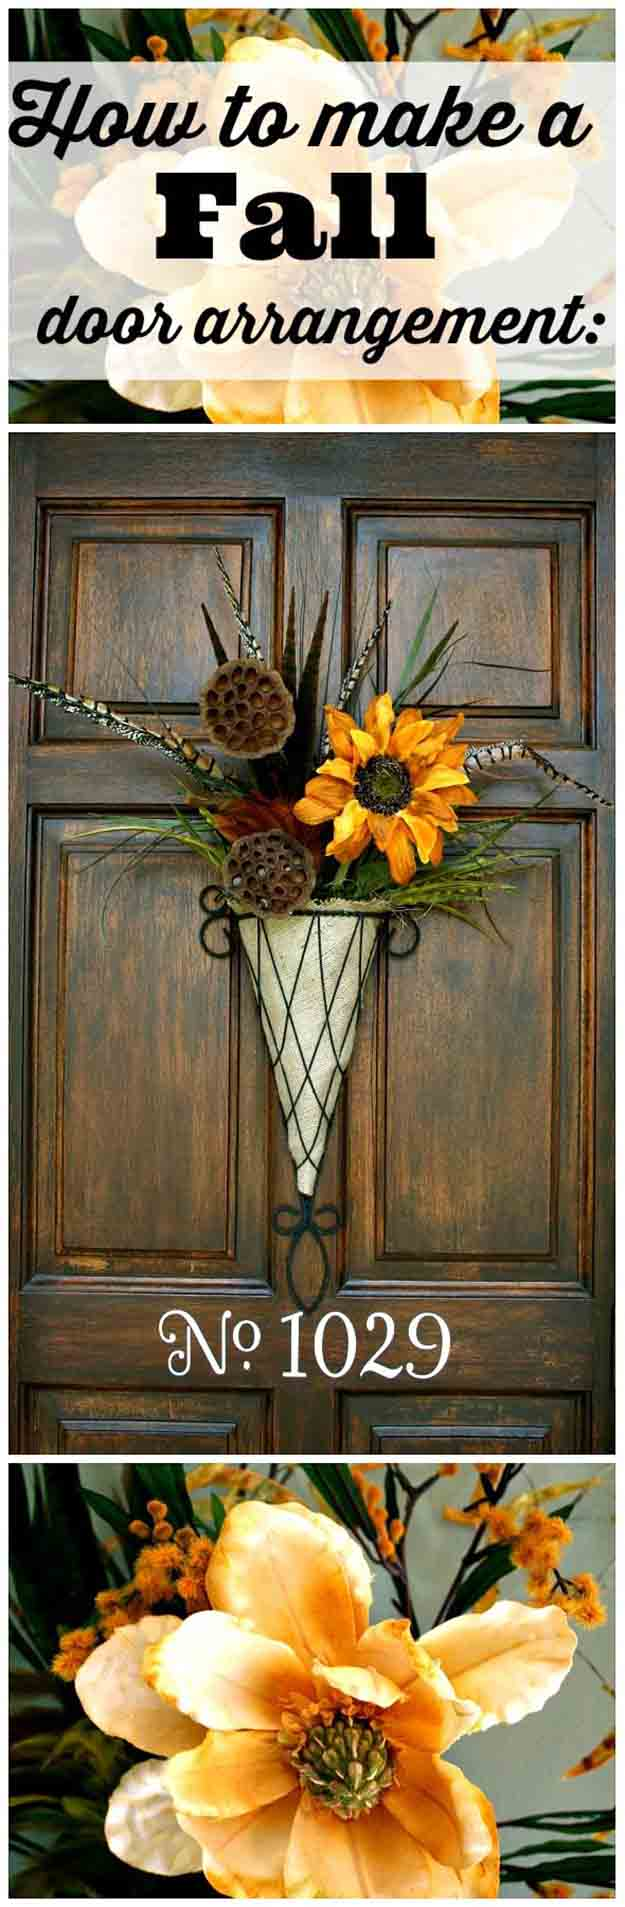 Fall Door Decorations And Wreaths DIY Projects Craft Ideas